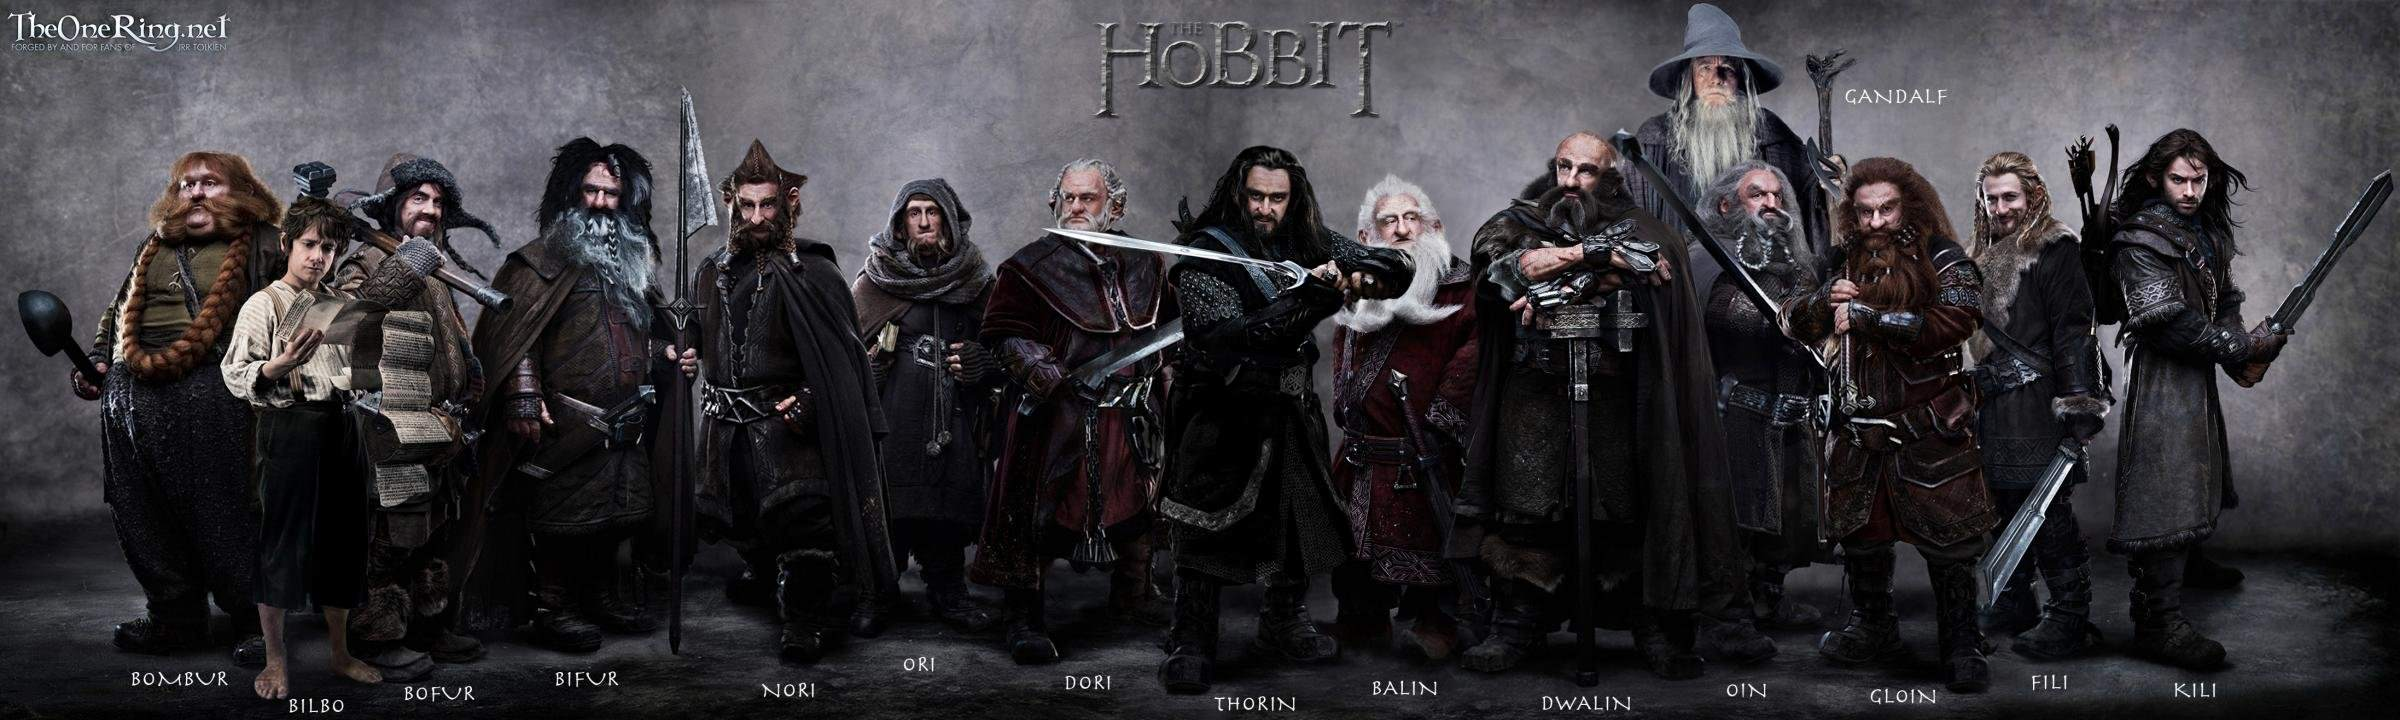 2400x720 Dual monitor The Lord Of The Rings (LOTR) wallpapers, HD backgrounds